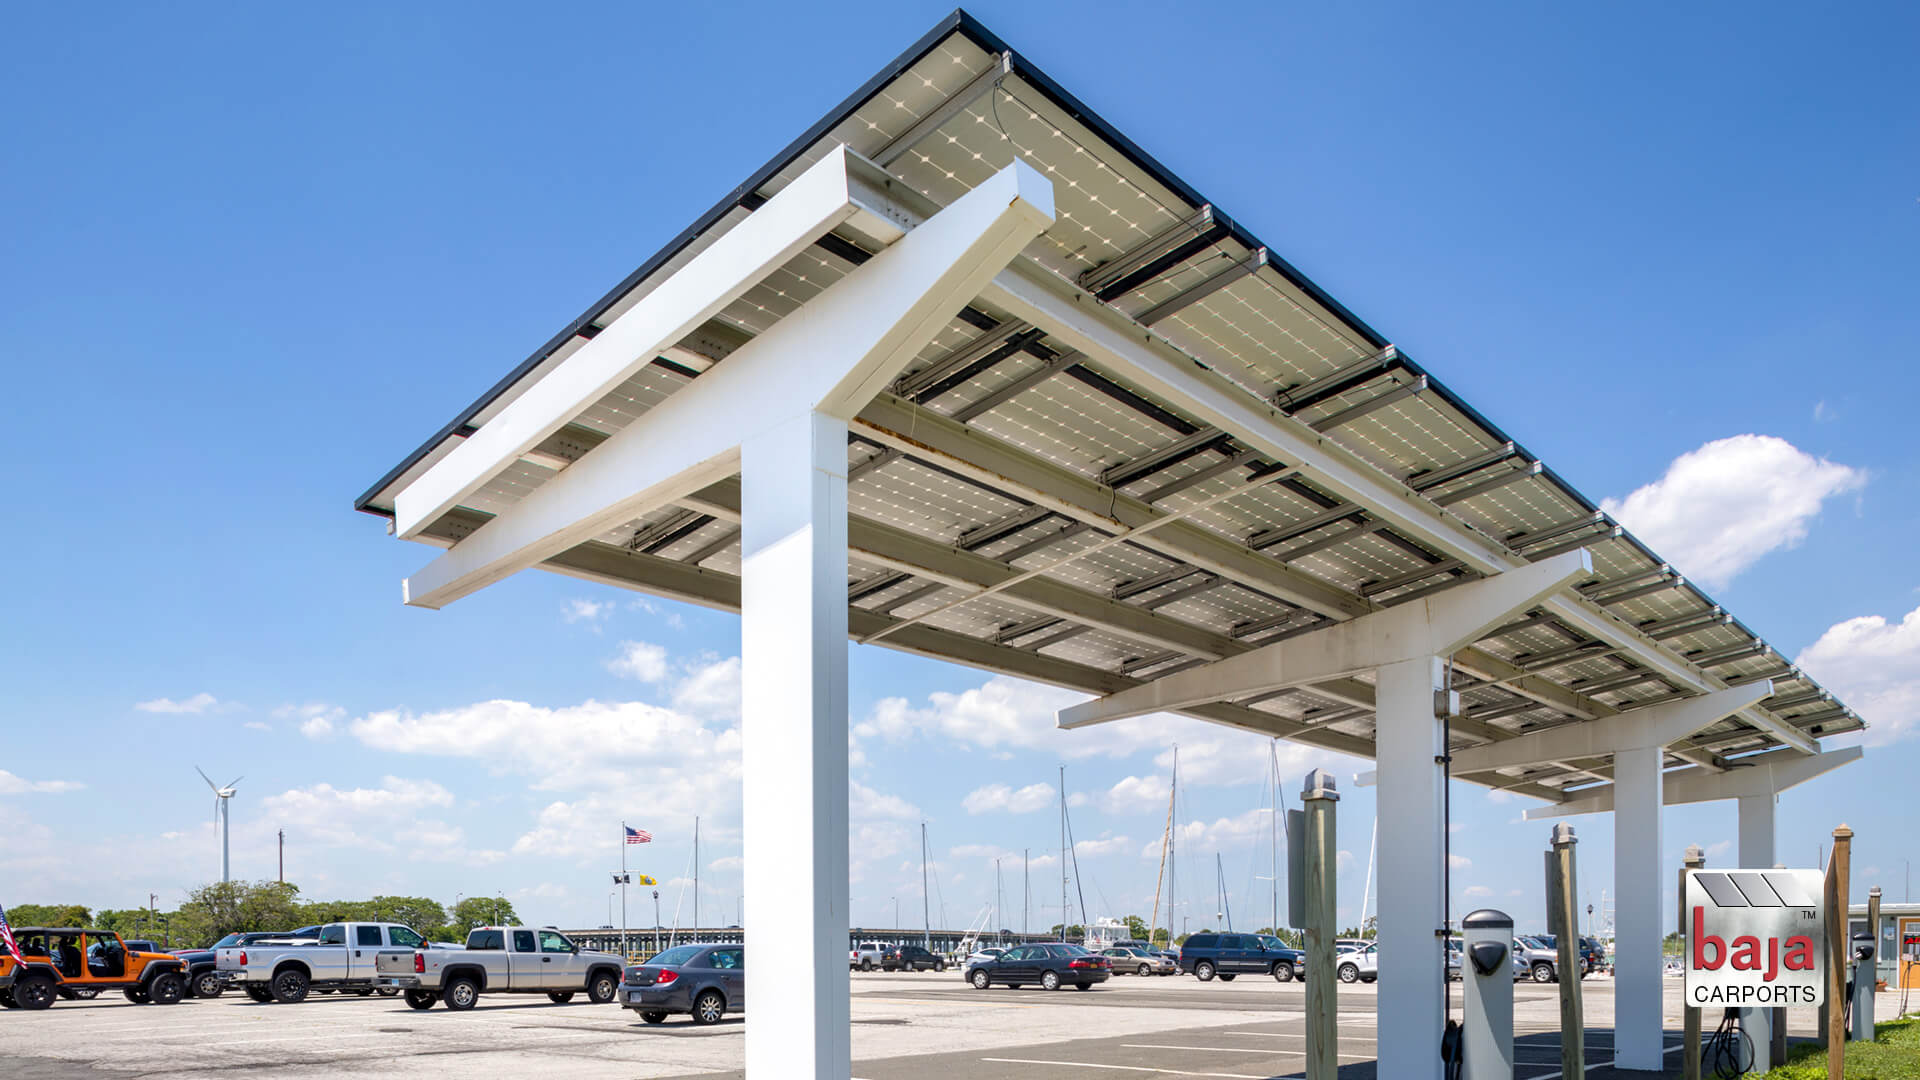 town of hempstead marina parks under solar carports